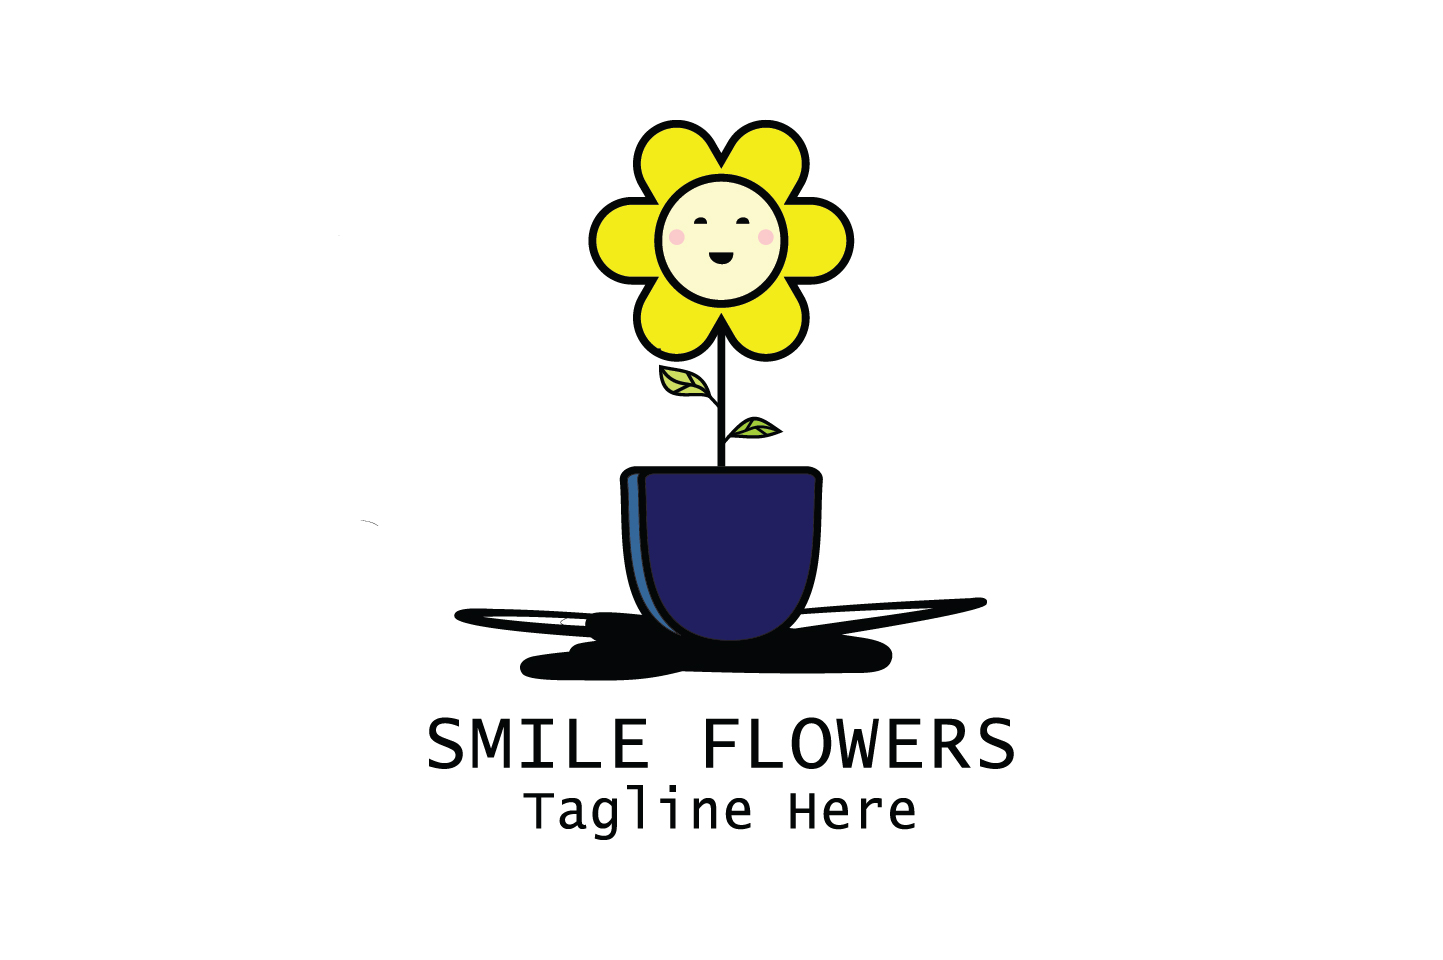 Download Free Smile Flowers Art Logo Vector Graphic By Yuhana Purwanti for Cricut Explore, Silhouette and other cutting machines.